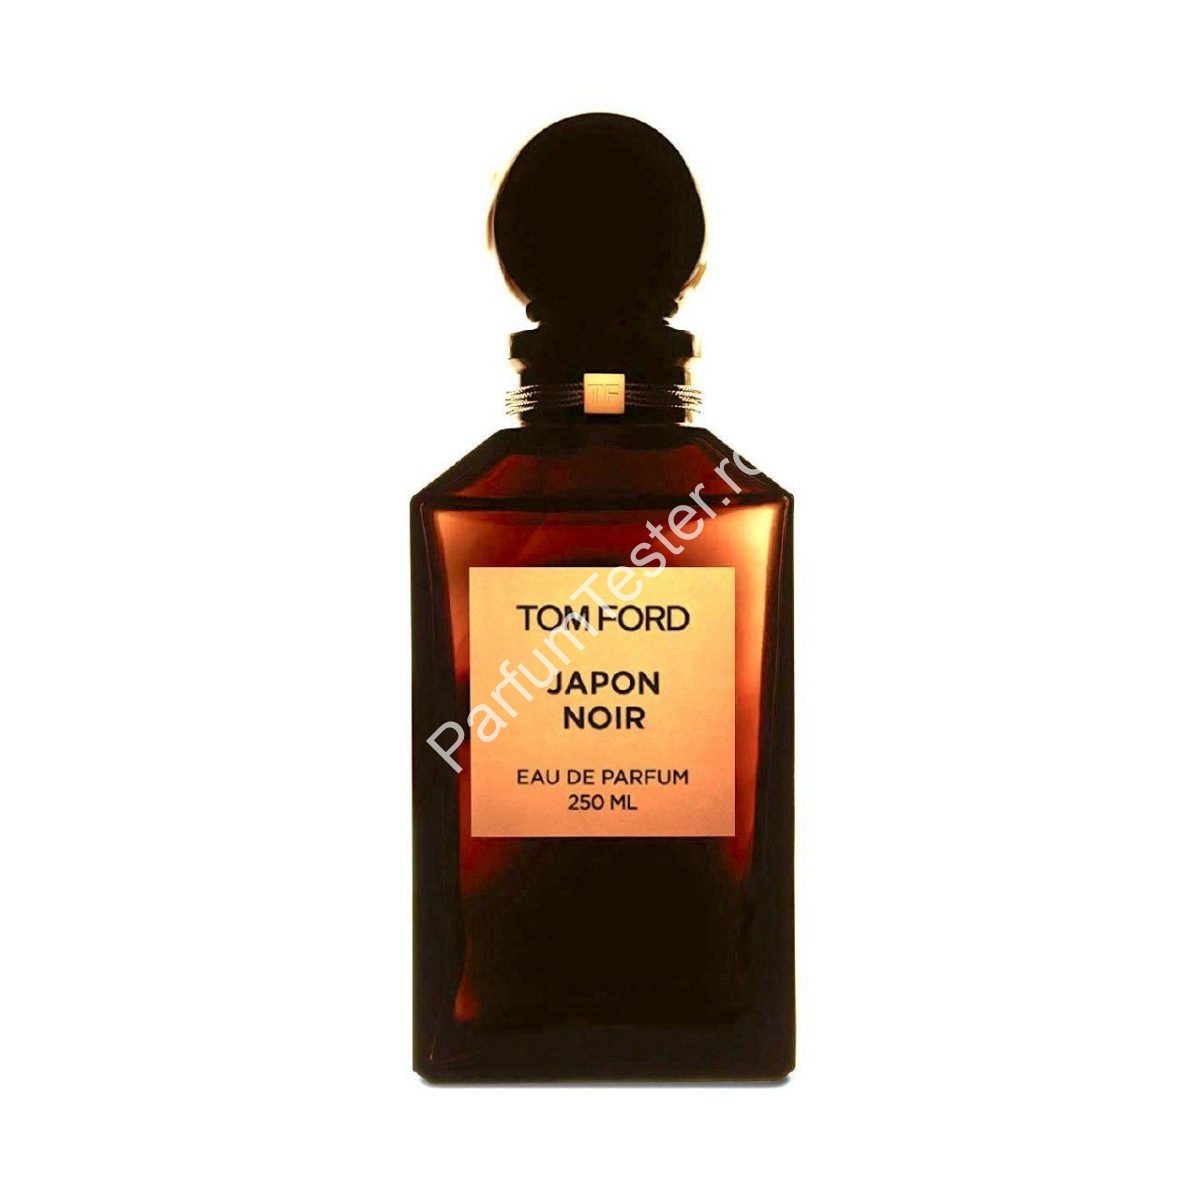 Tom Ford Japon Noir tester